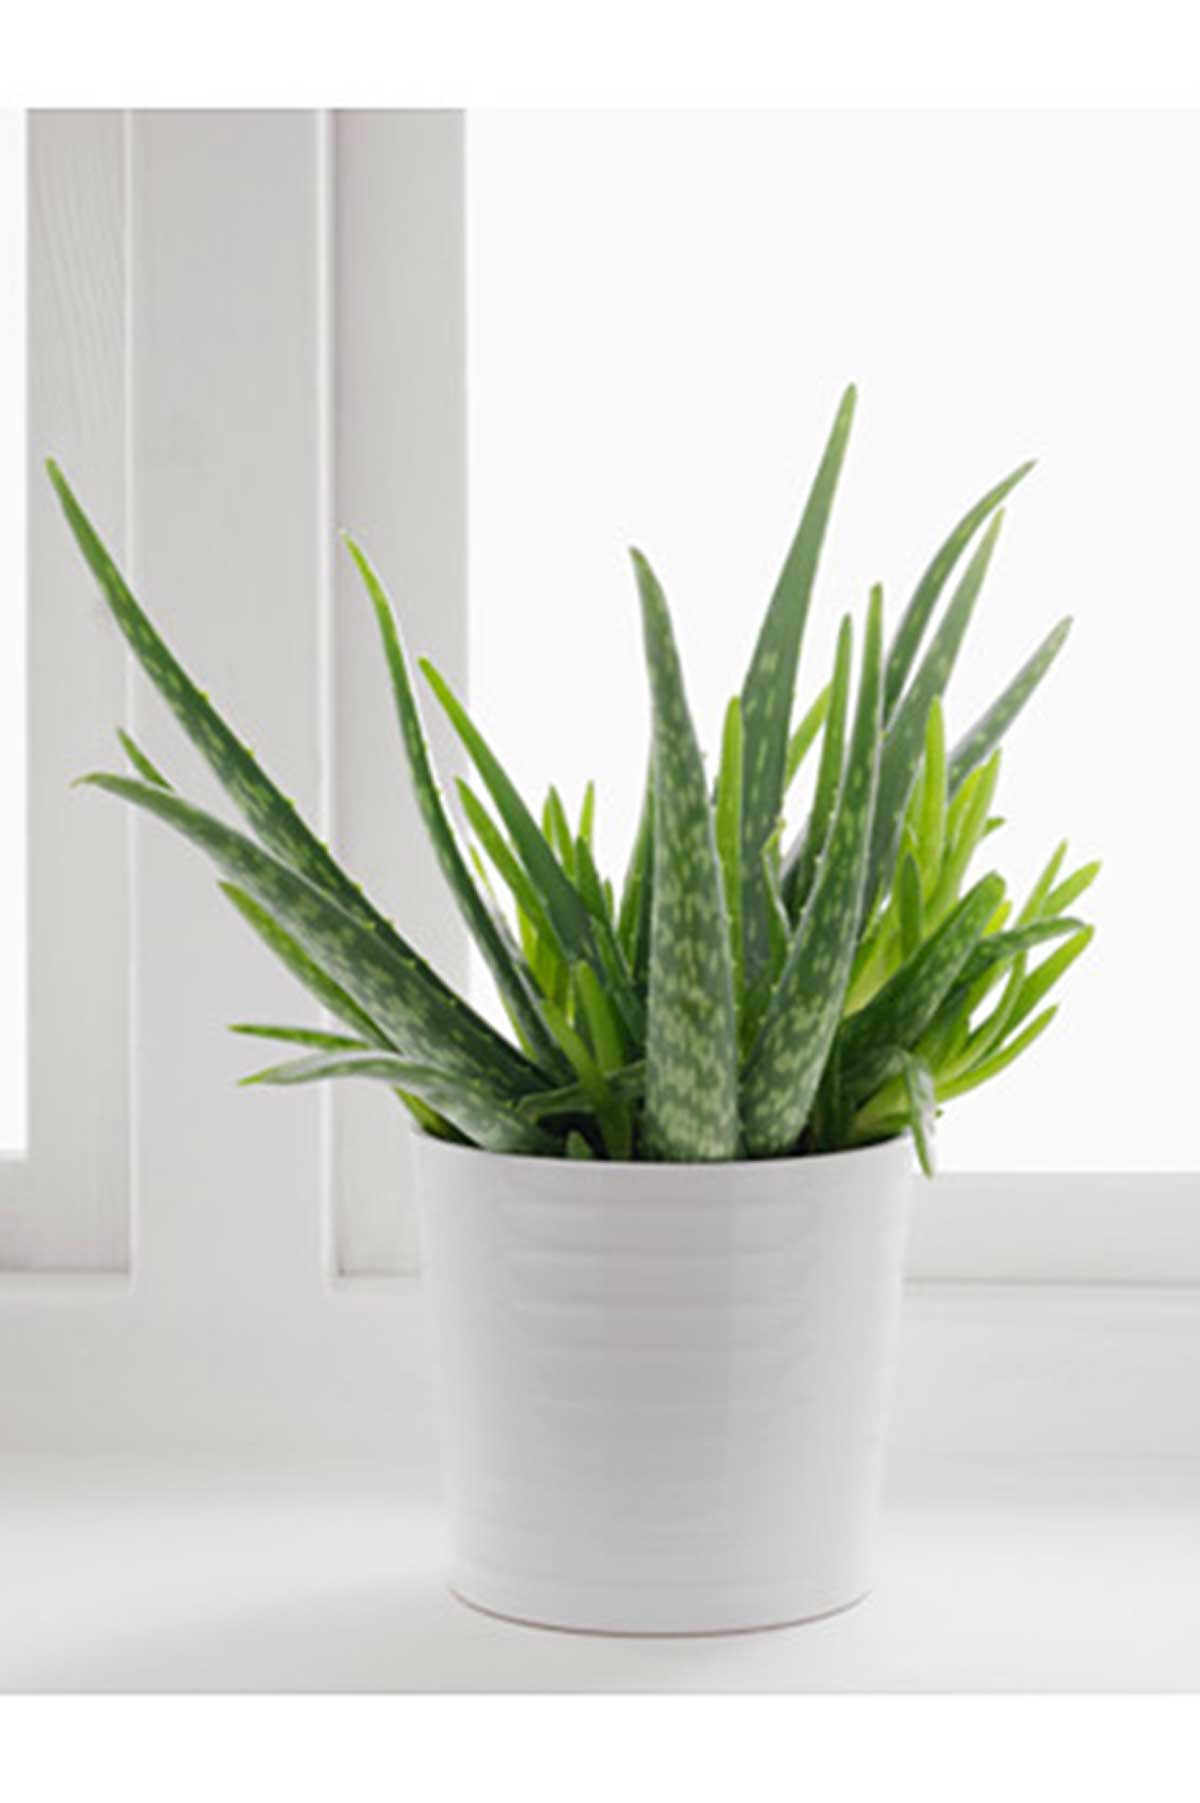 Aloe Vera Plant Care The Ultimate Guide For How To Grow: A Complete Guide On The Best Indoor Plants